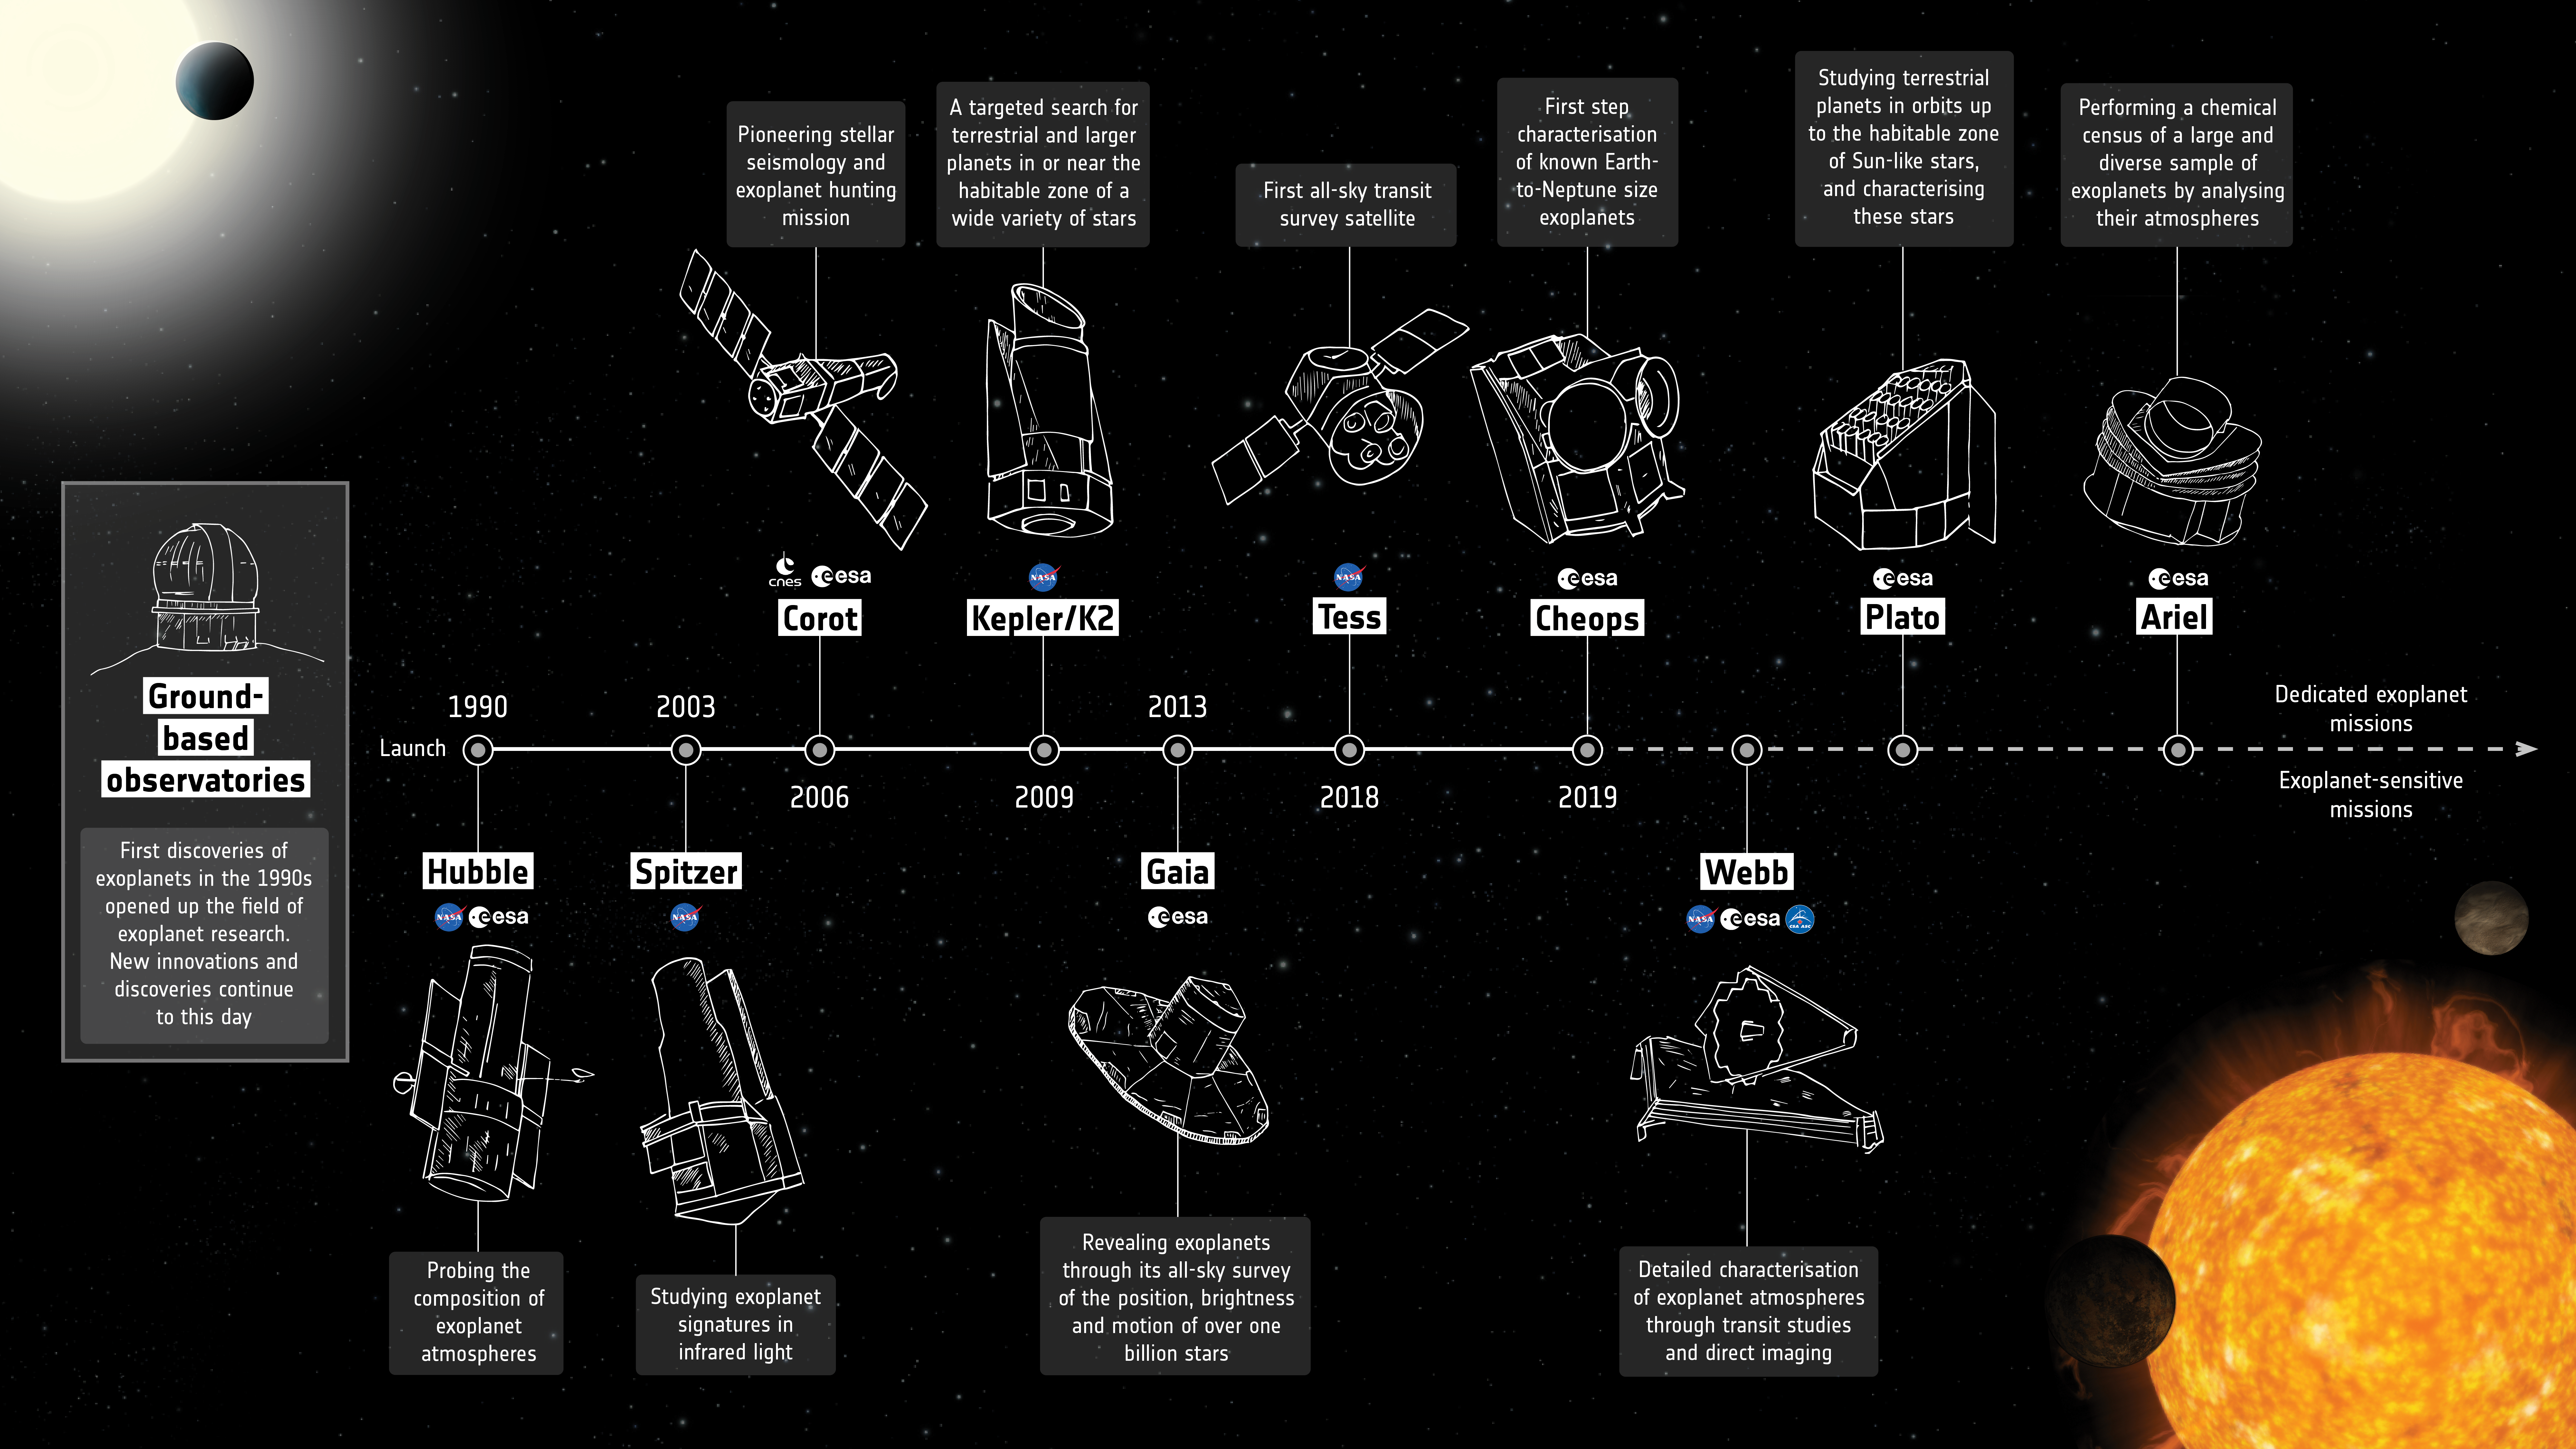 Exoplanets_missions_20201127.png